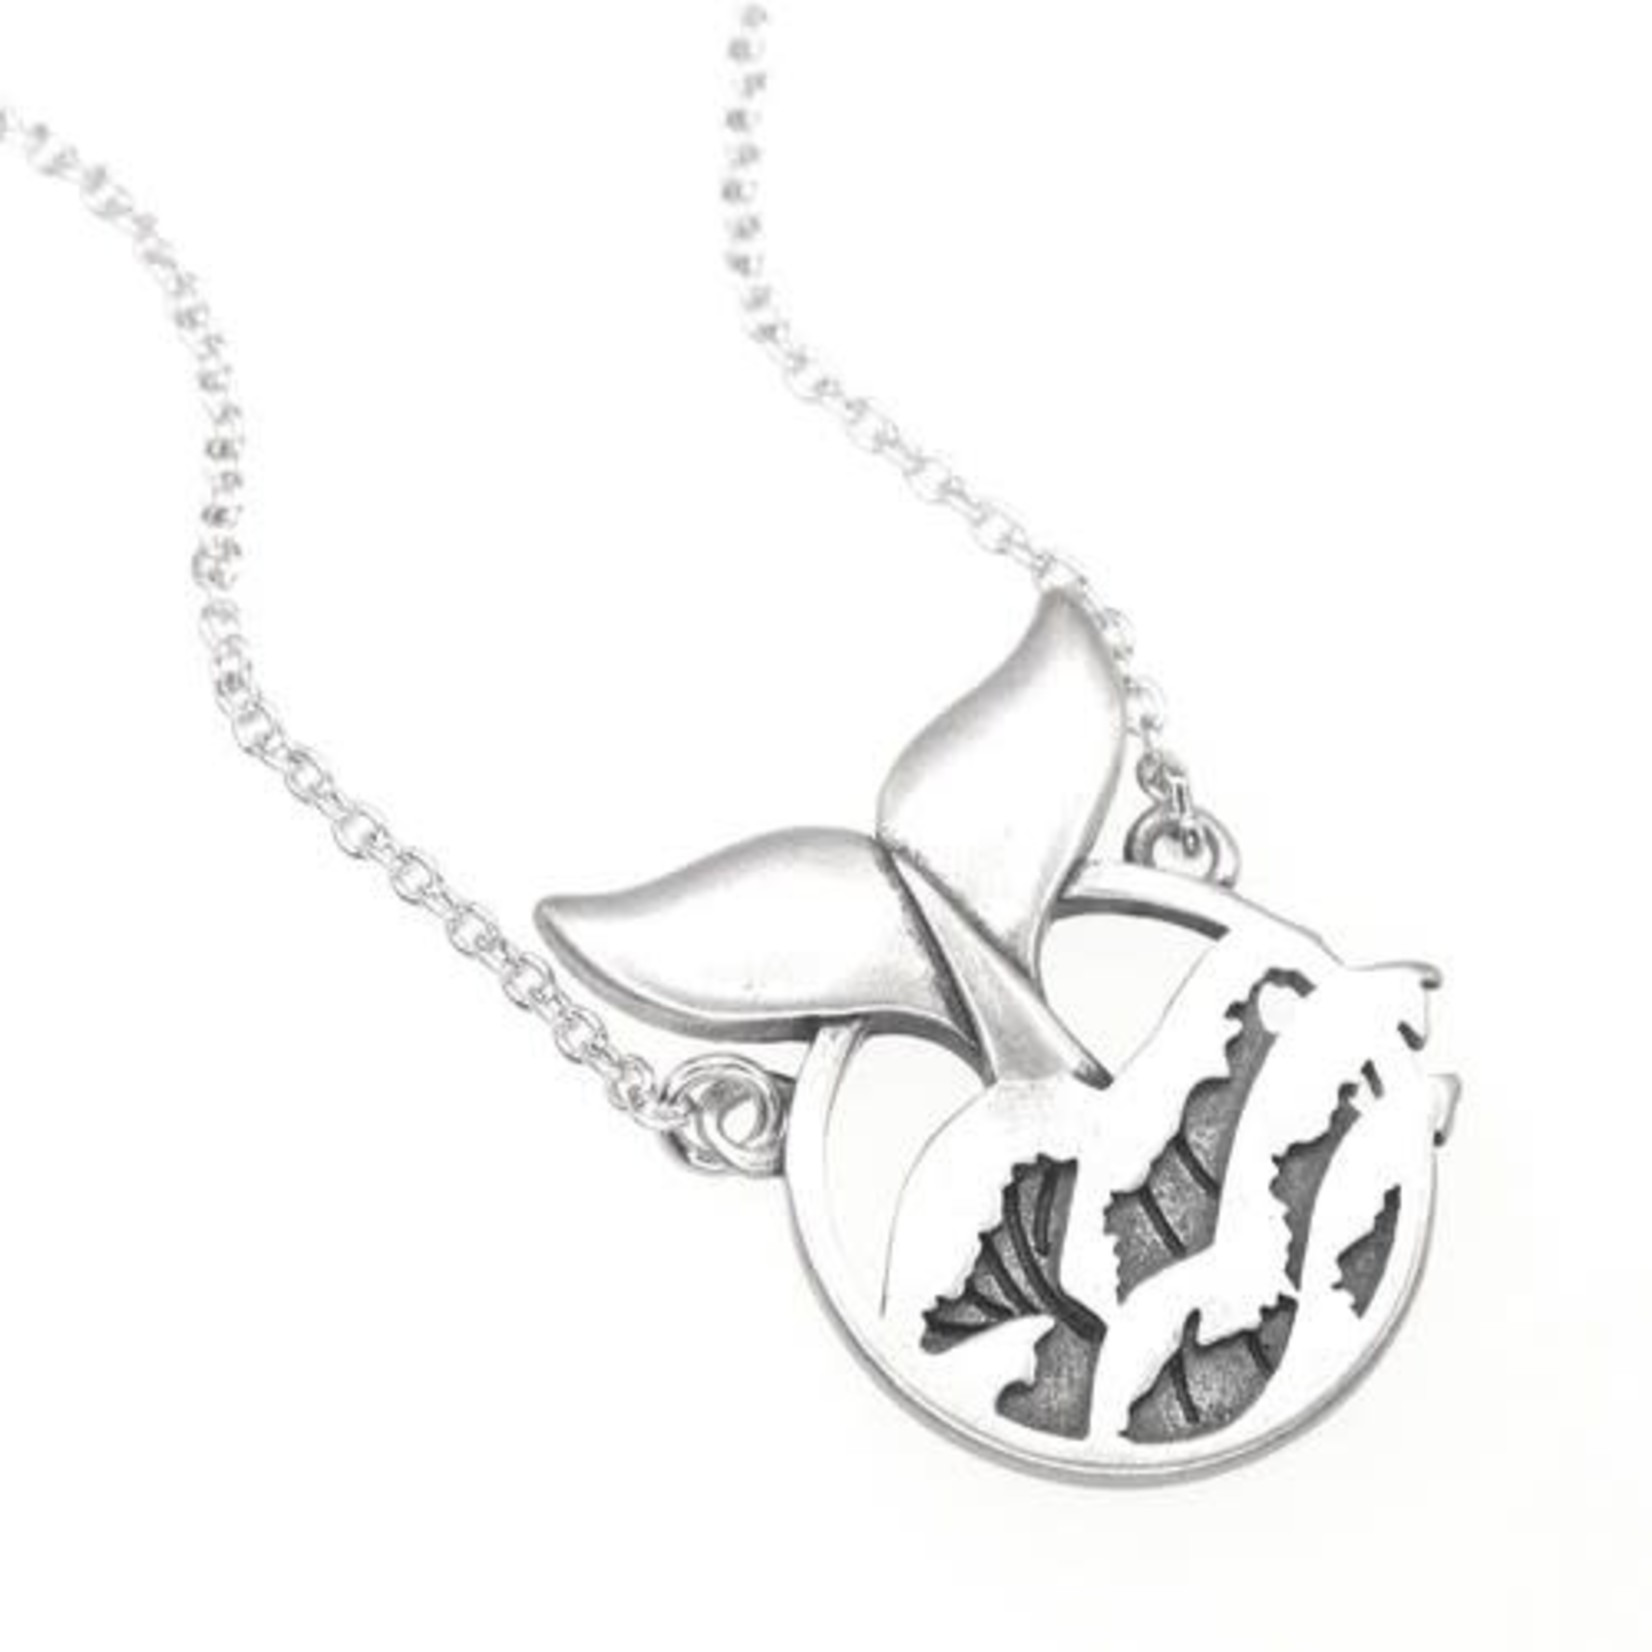 Ocean Wise Whale Tail in Waves Necklace